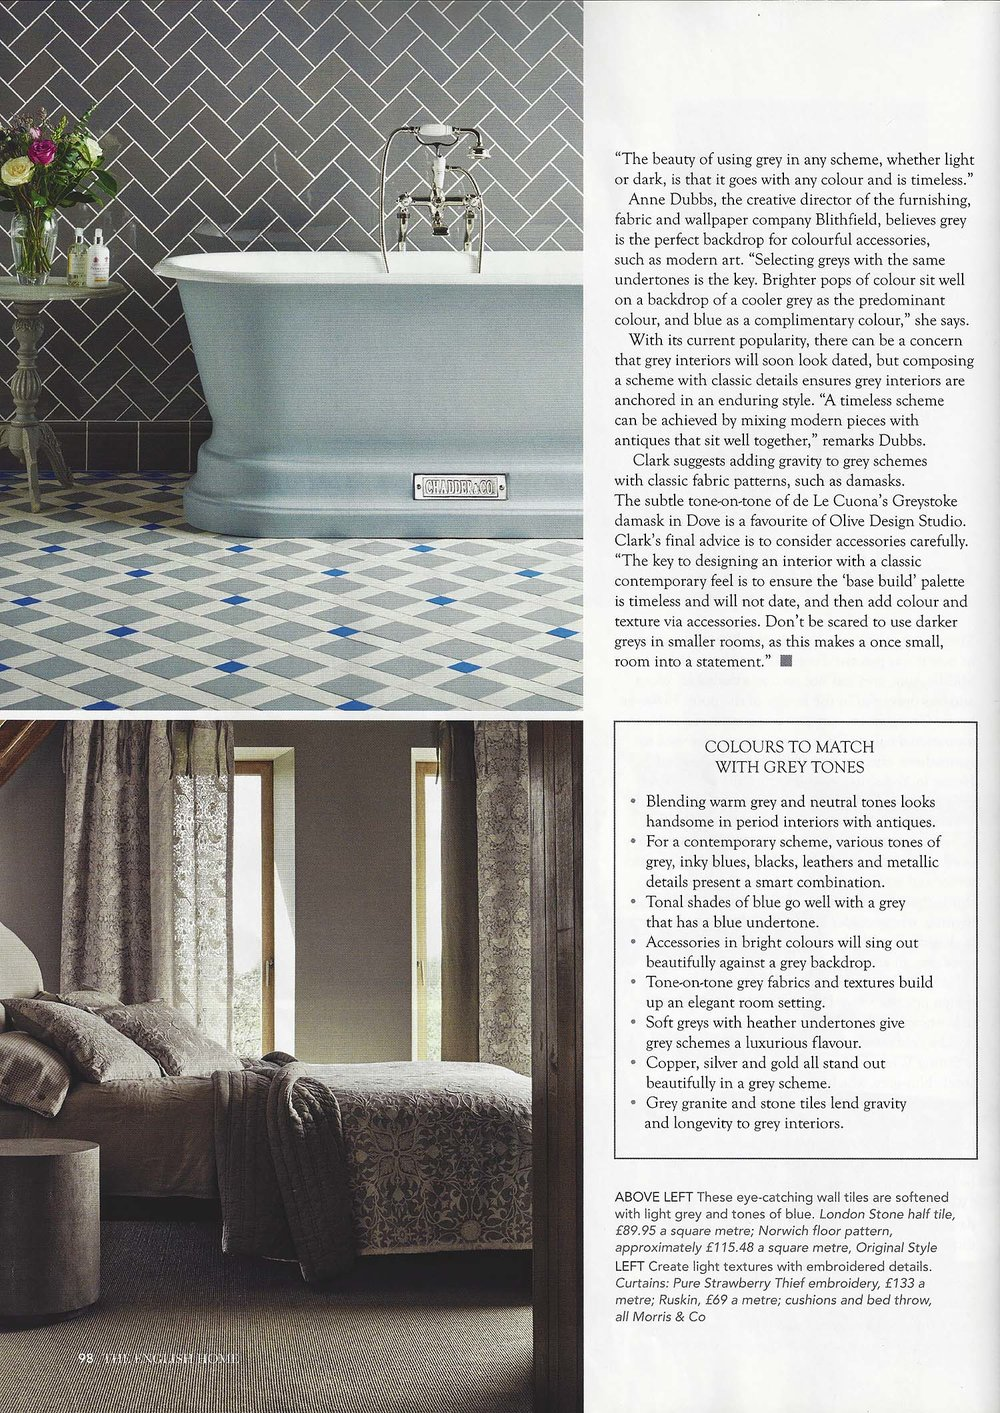 The English Home - Feb '17 - Page 98 - 'GENTLE GREYS - Page 97 (ANNE DUBBS' APARTMENT) - See Quotes.jpg